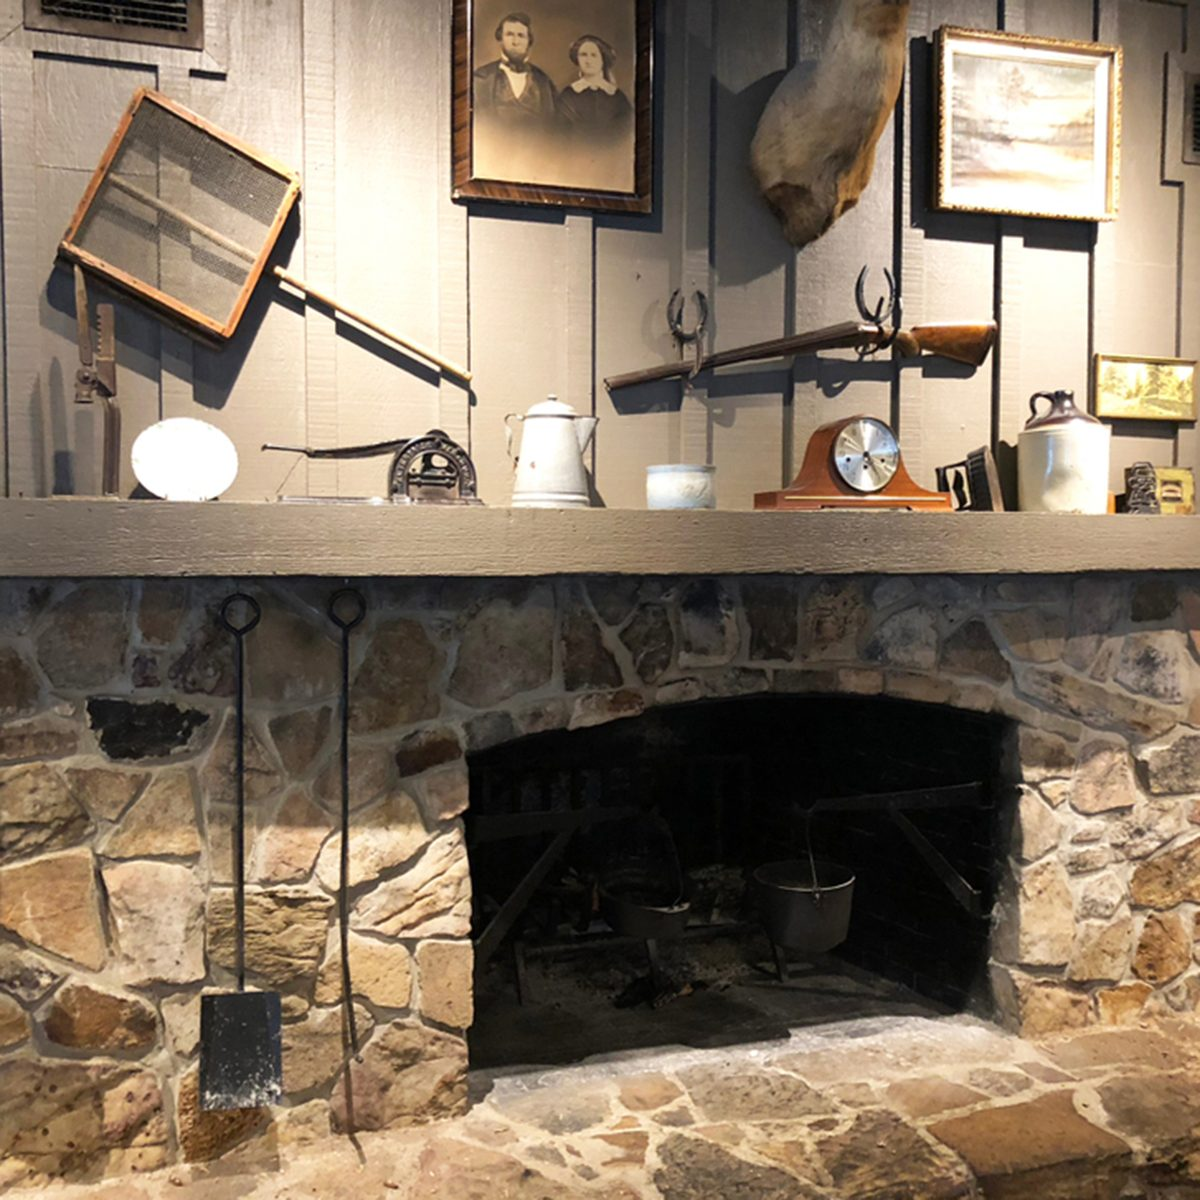 Nostalgic stone fireplace inside a Craker Barrel restaurant and Old Country Store.